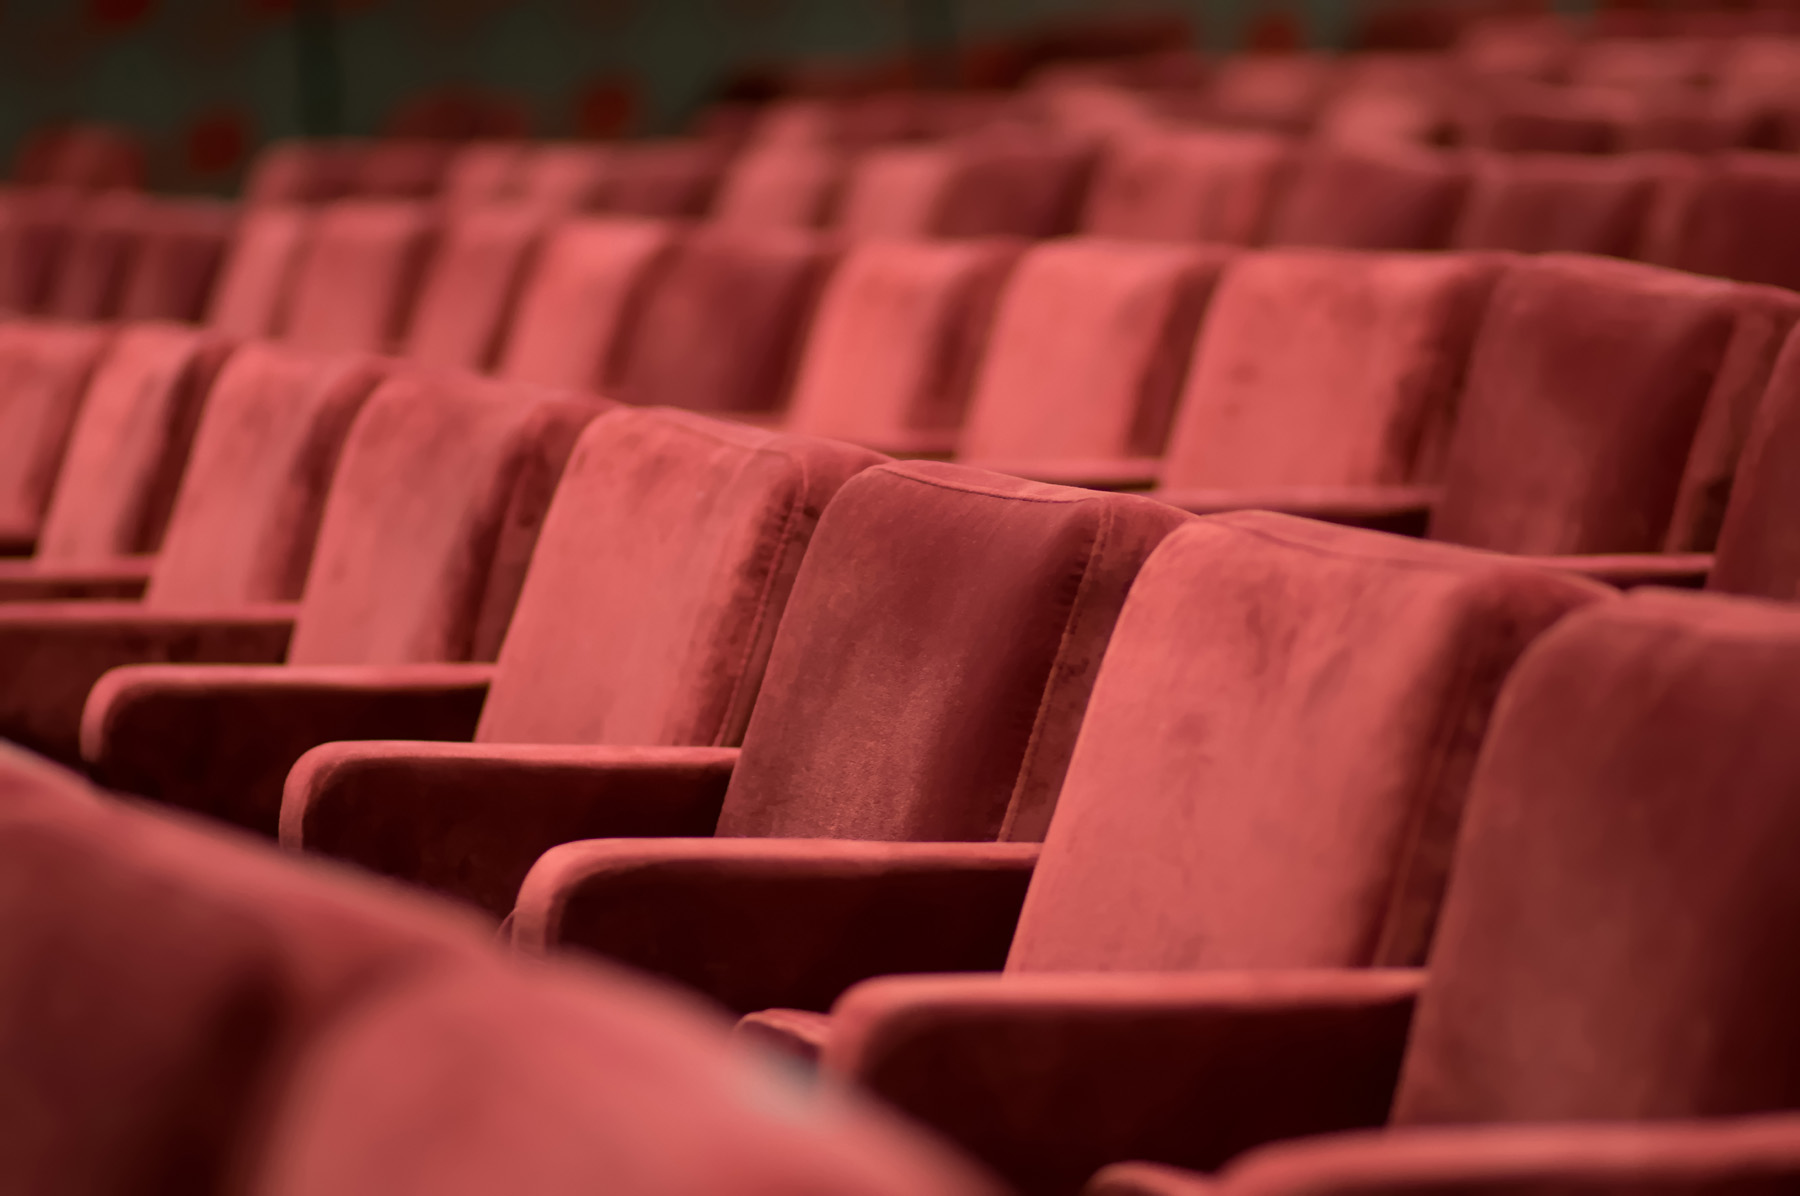 Red of the cinema seating 51661